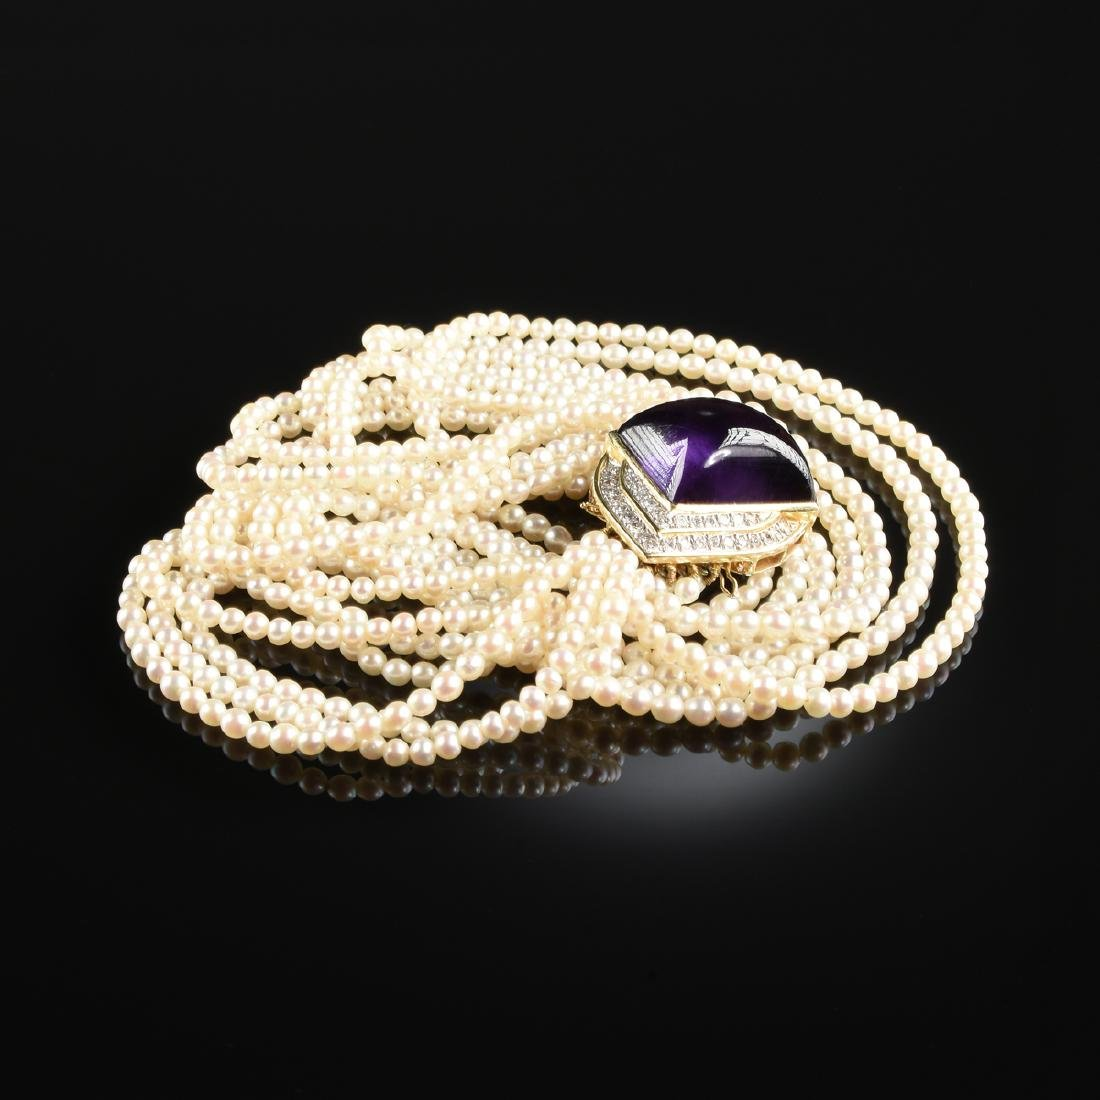 A 14K YELLOW GOLD, PEARL, AMETHYST, AND DIAMOND CHOKER